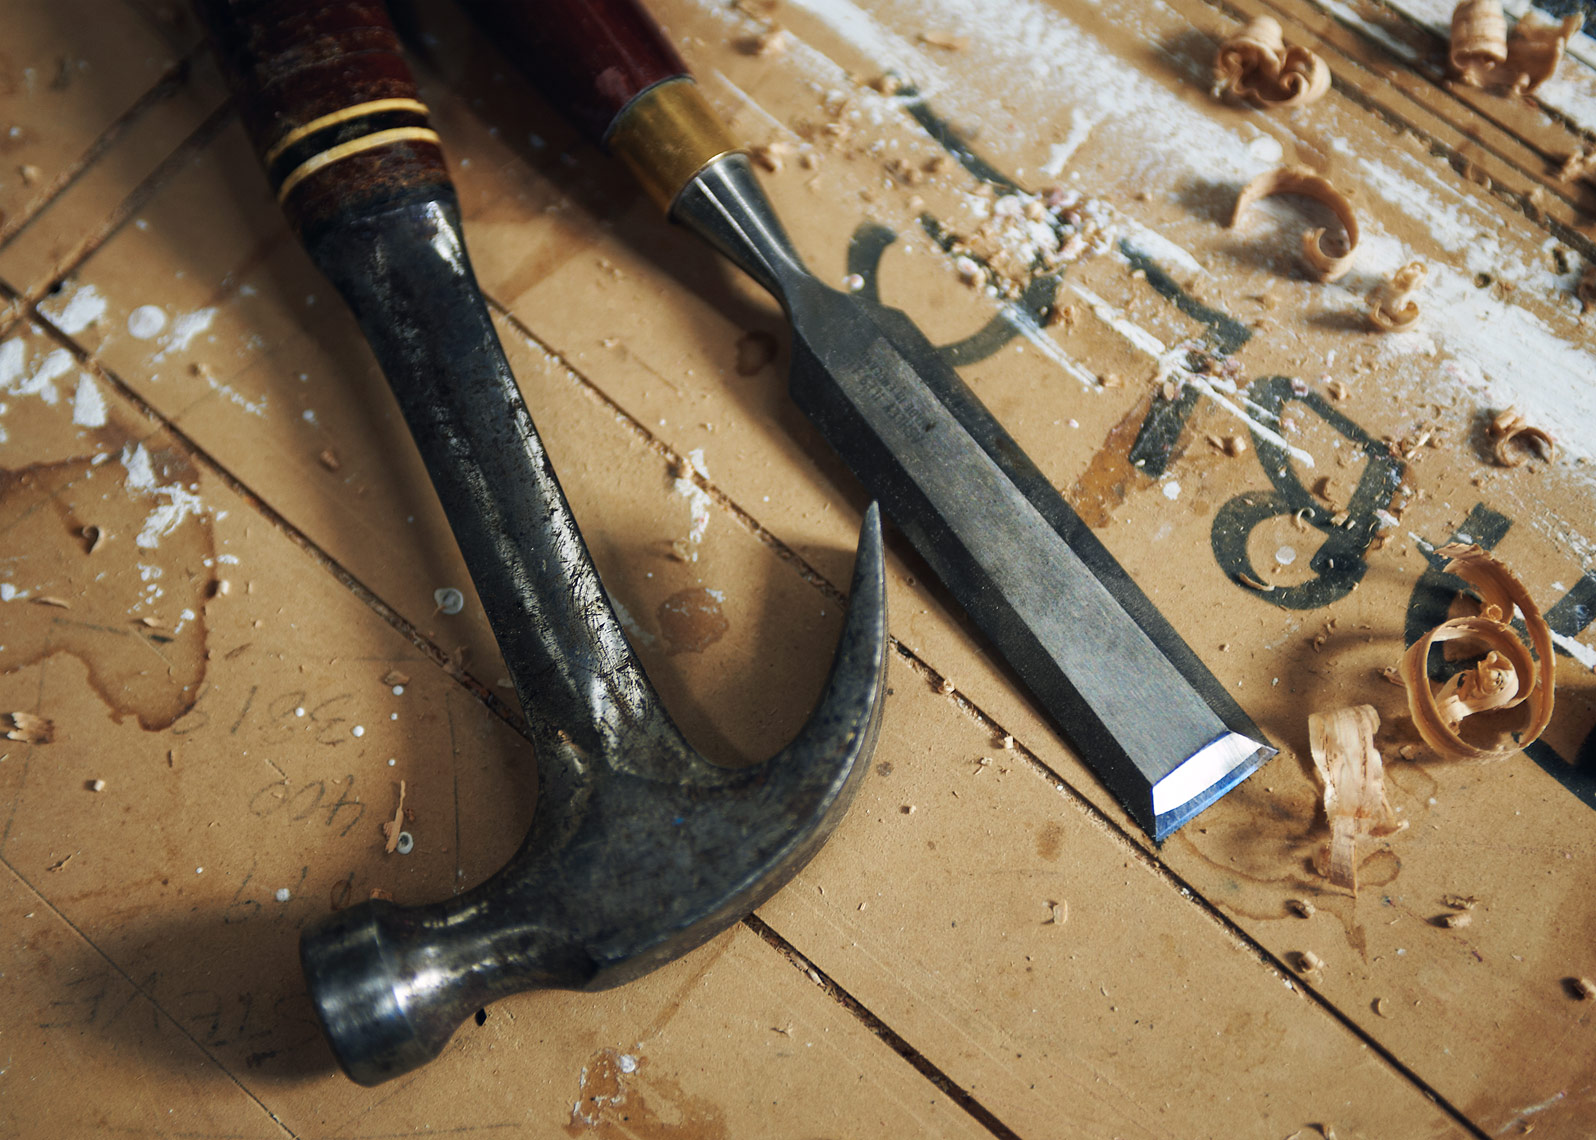 photograph of woodworkers tools